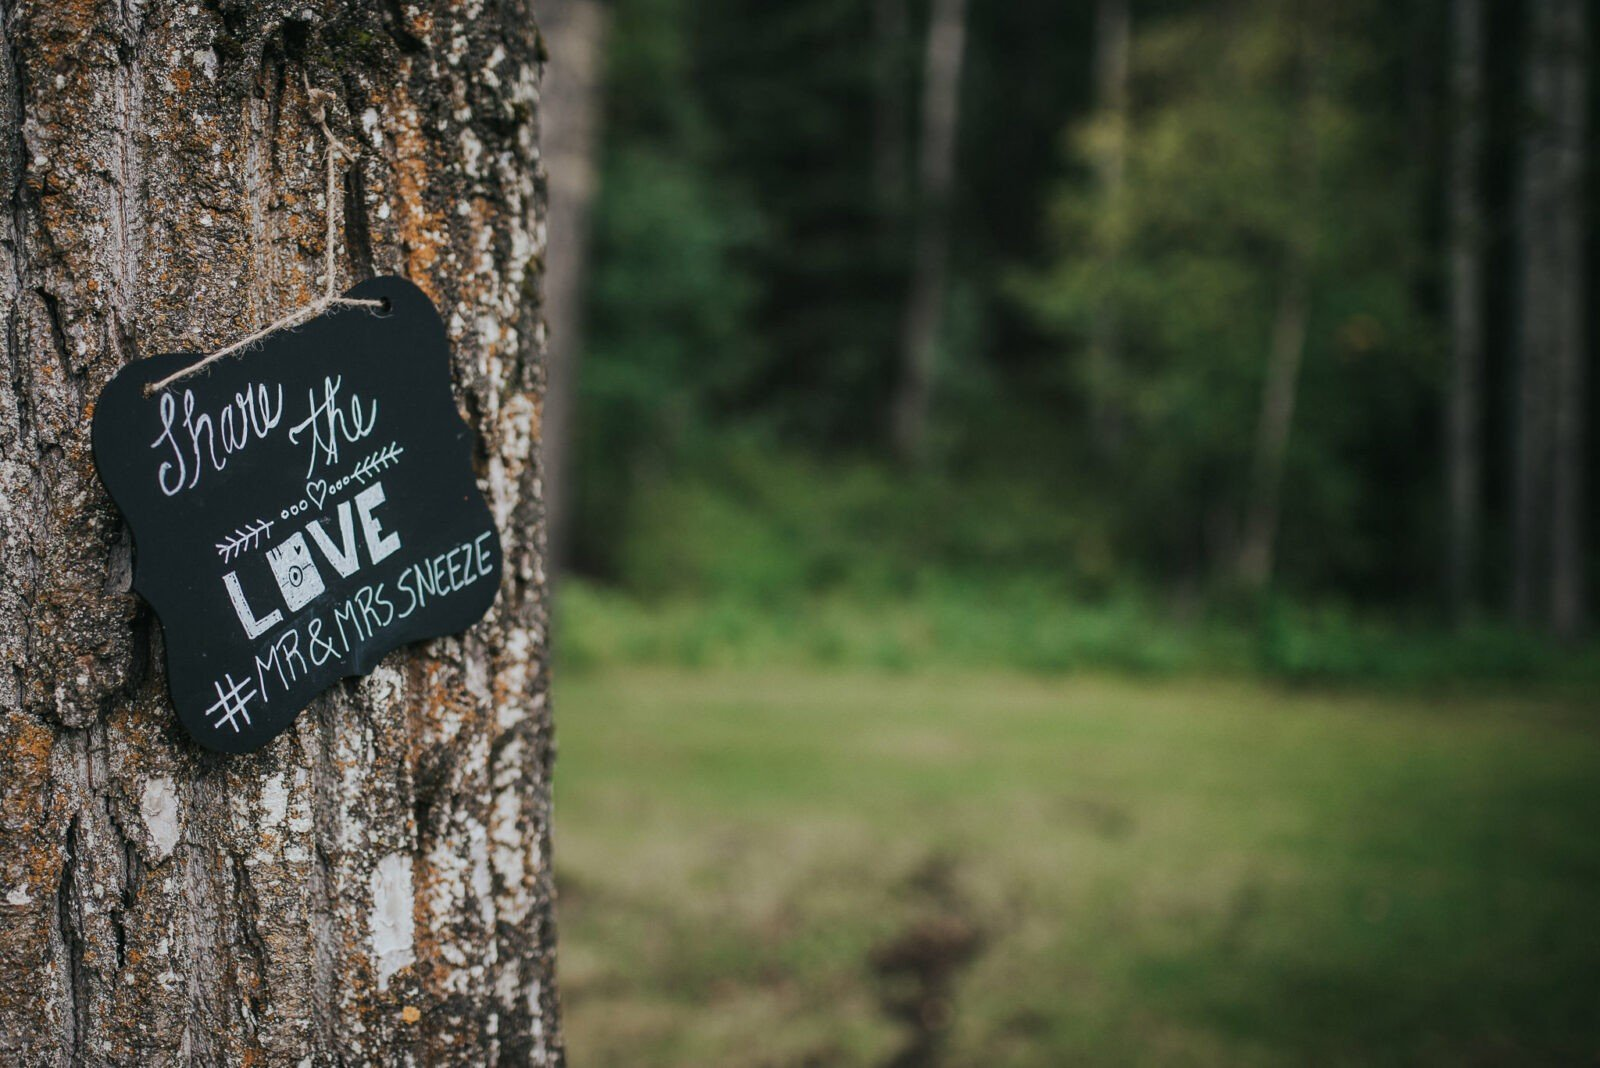 Sign for instagram info for the wedding pics.